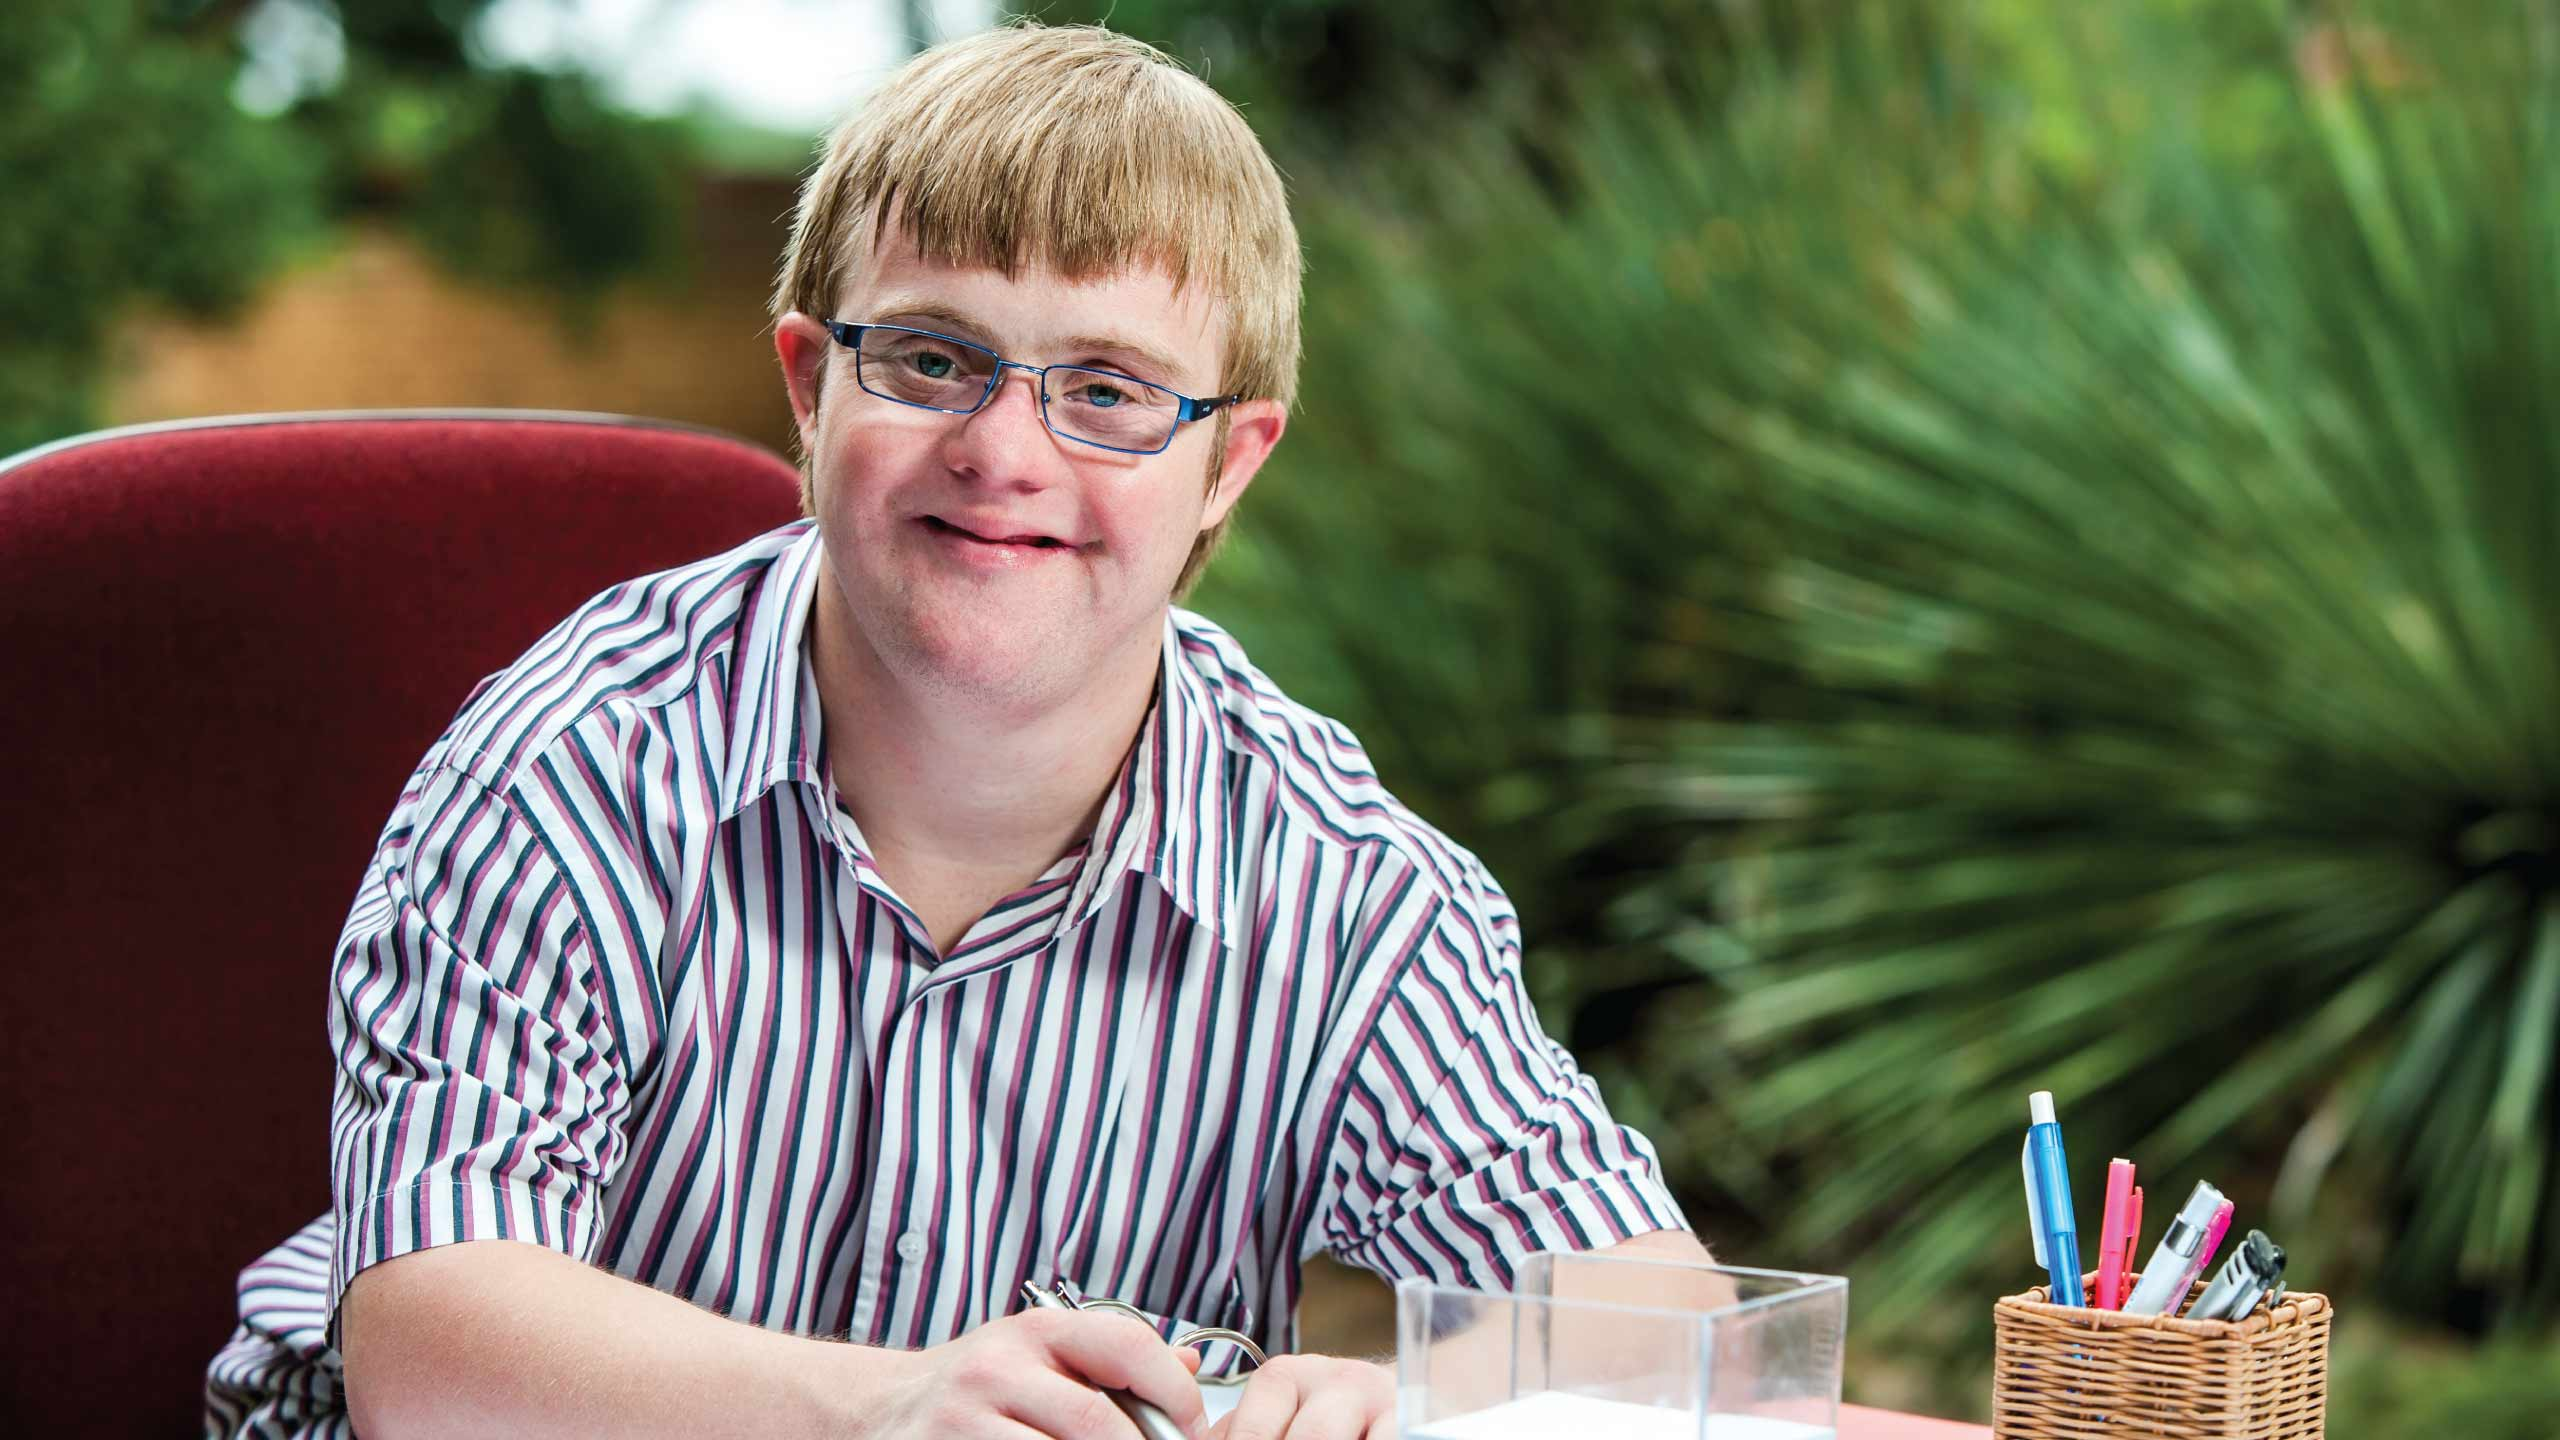 Young man with disability doing school work